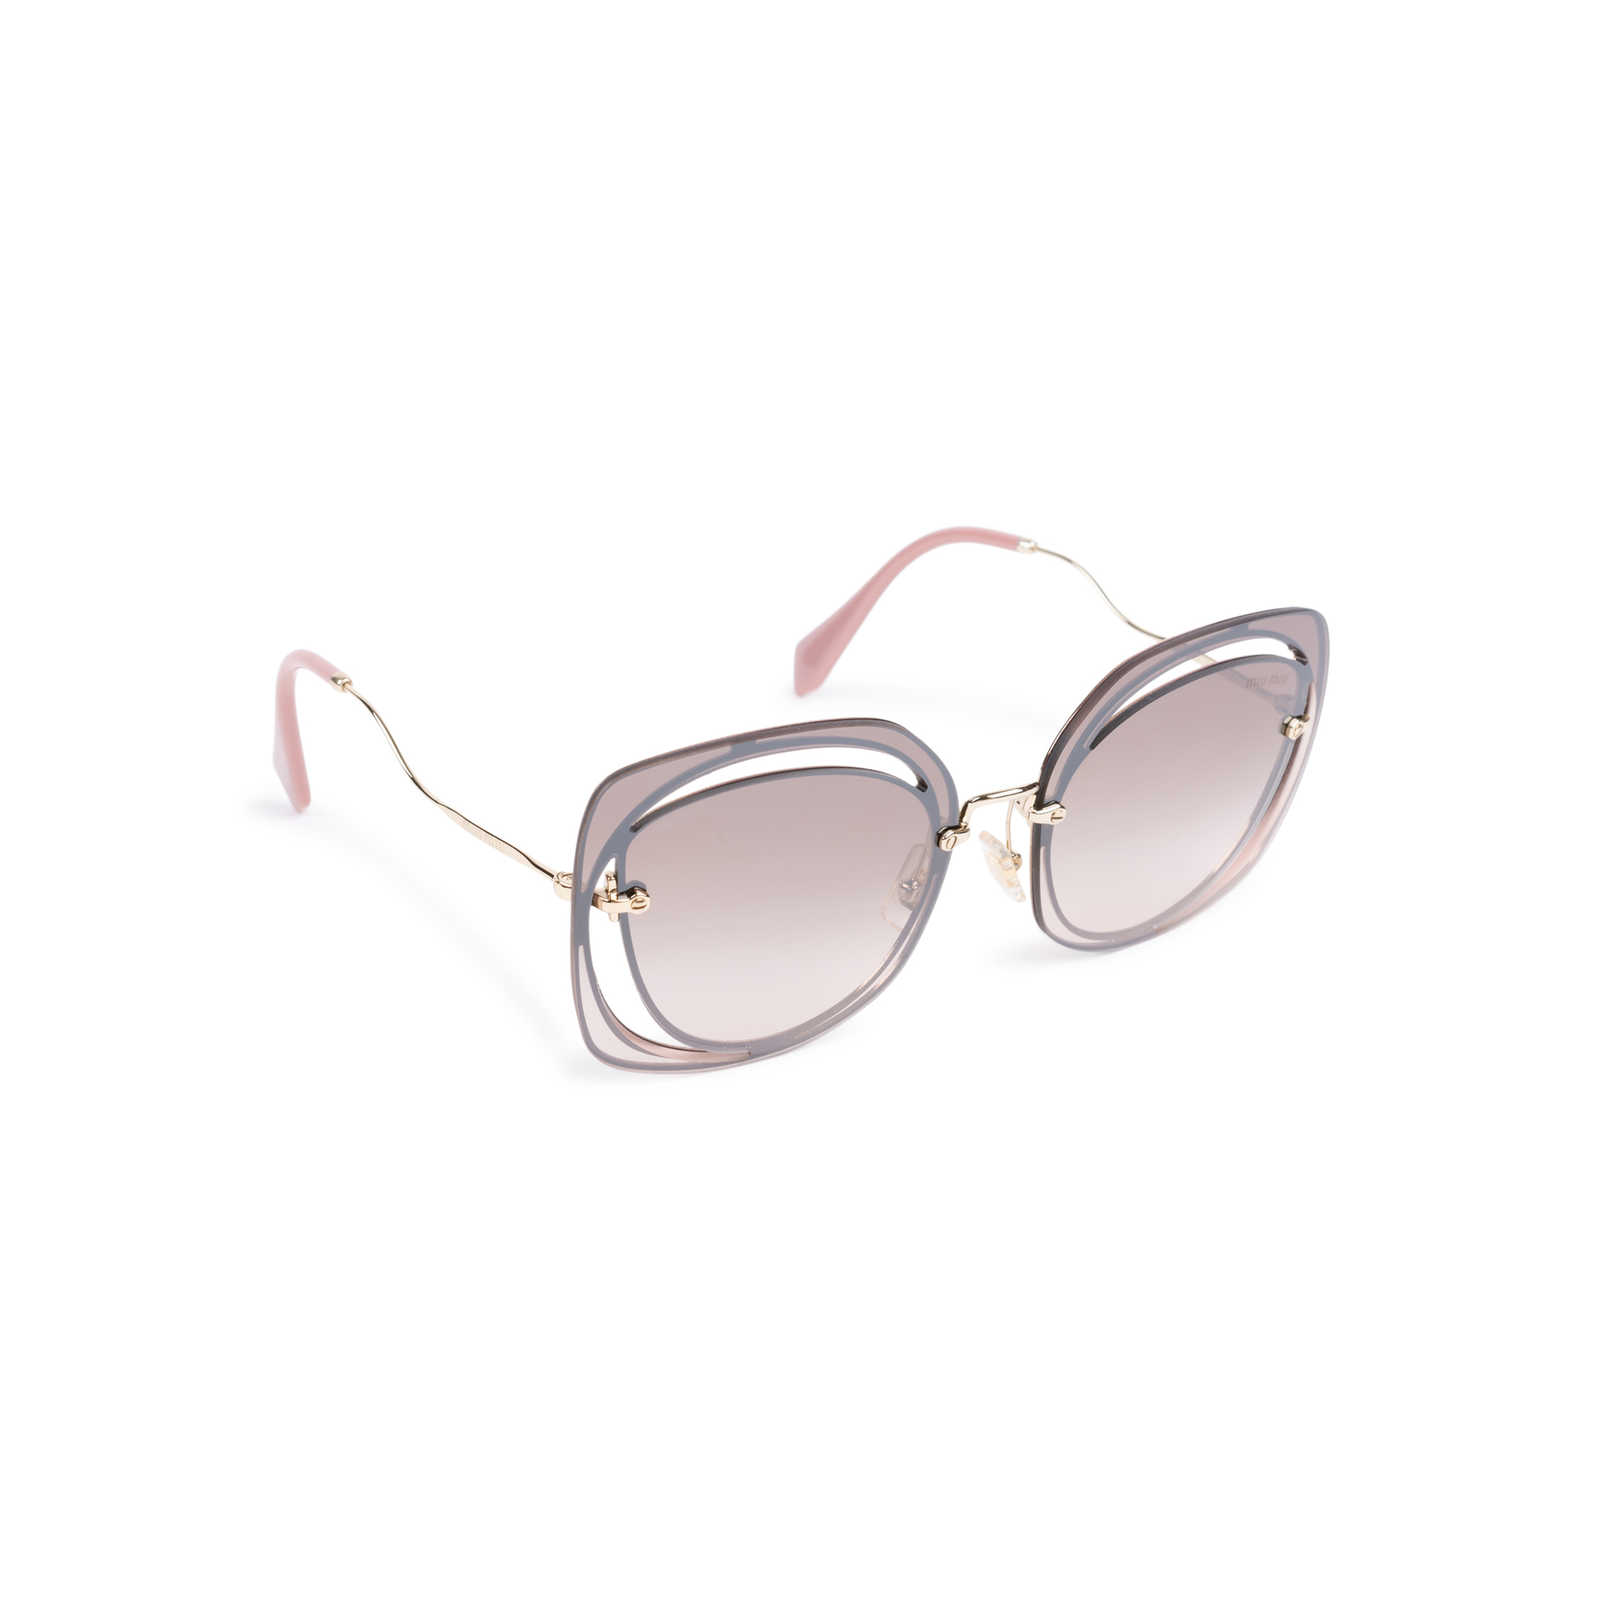 bbba00686d1 ... Authentic Second Hand Miu Miu Brown Pink Cut Out Square Sunglasses  (PSS-200 ...